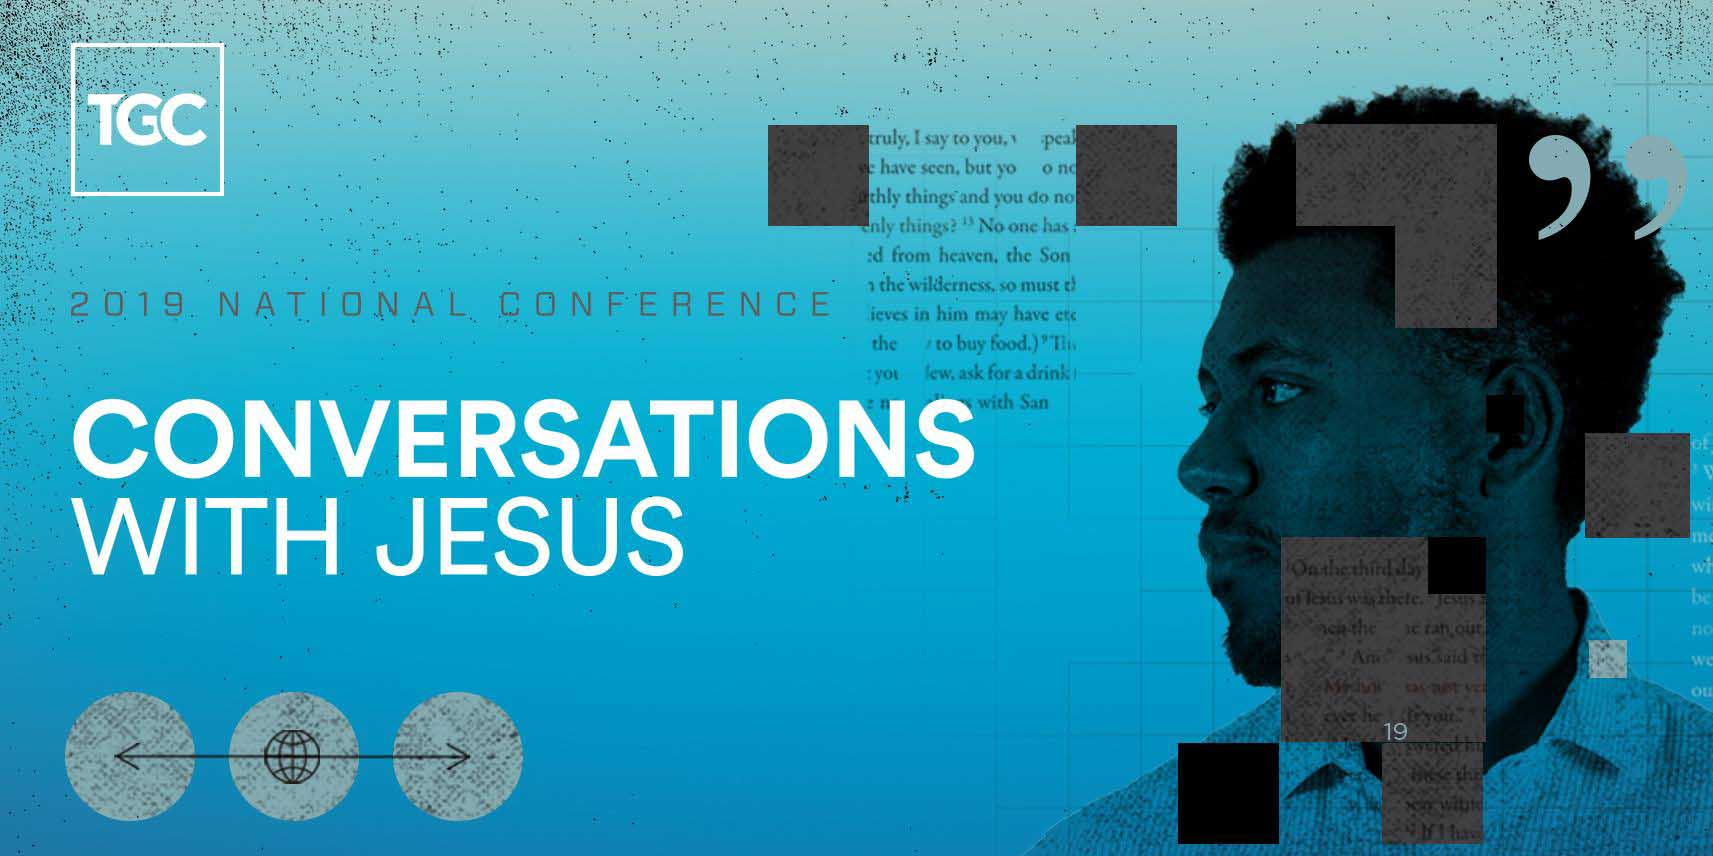 Conference Media from TGC's 2019 National Conference